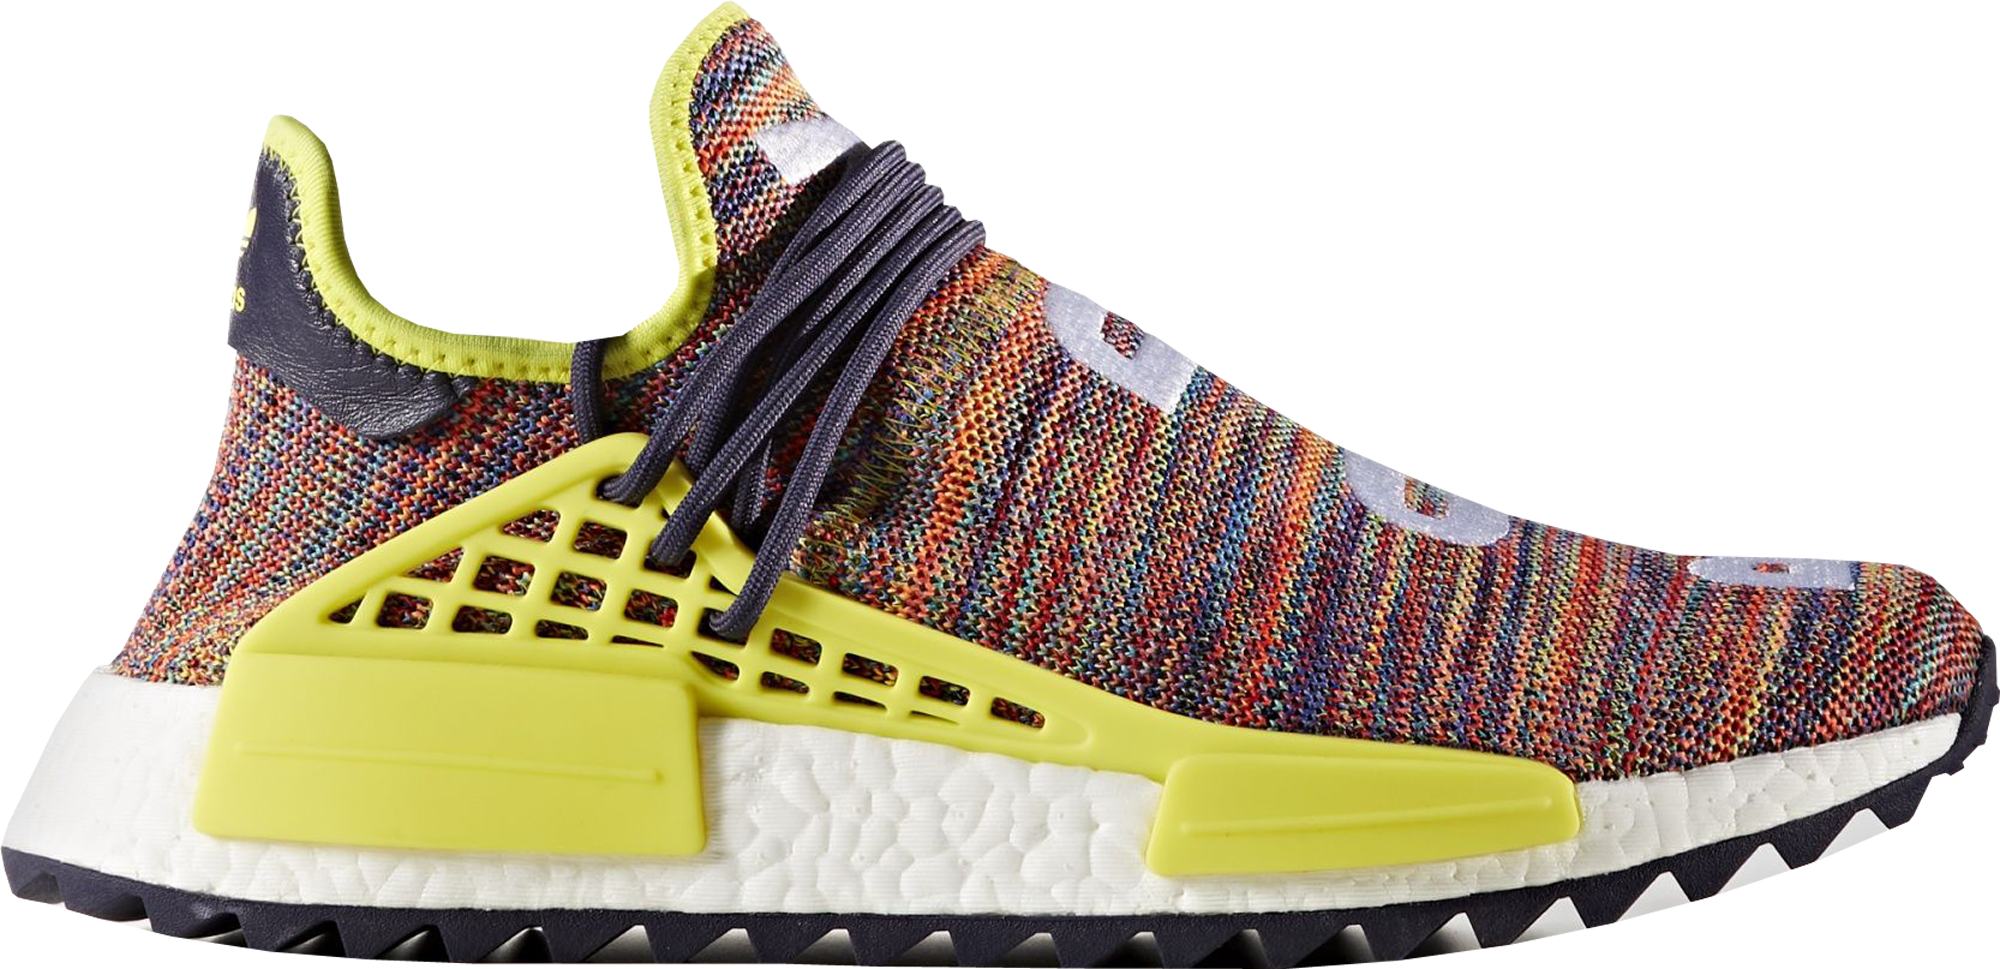 los angeles dc5d6 f875a adidas Human Race NMD Pharrell Multi-Color | To Buy in 2019 ...